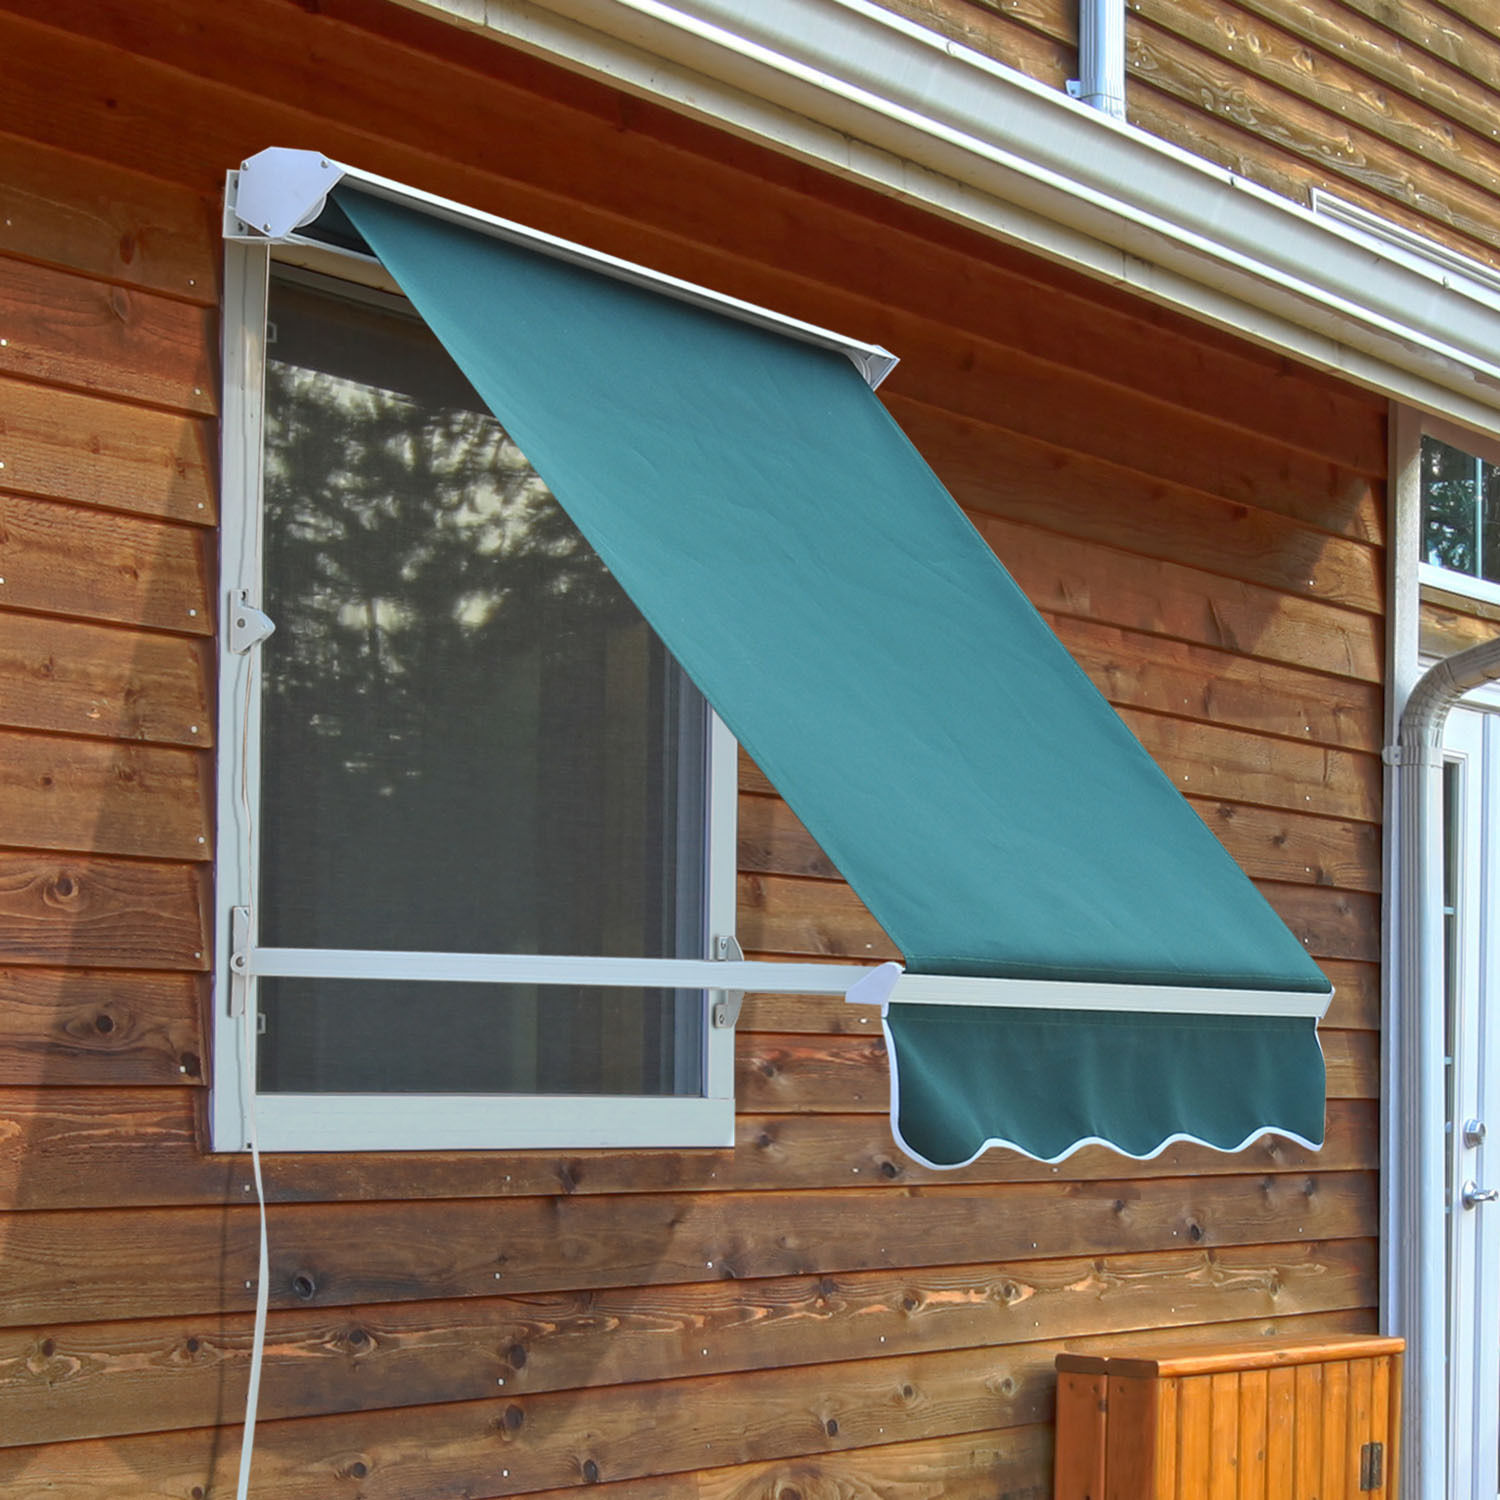 Outsunny Store Banne Manuel Outsunny Drop Retractable Window Awning Canopy Sun Shade